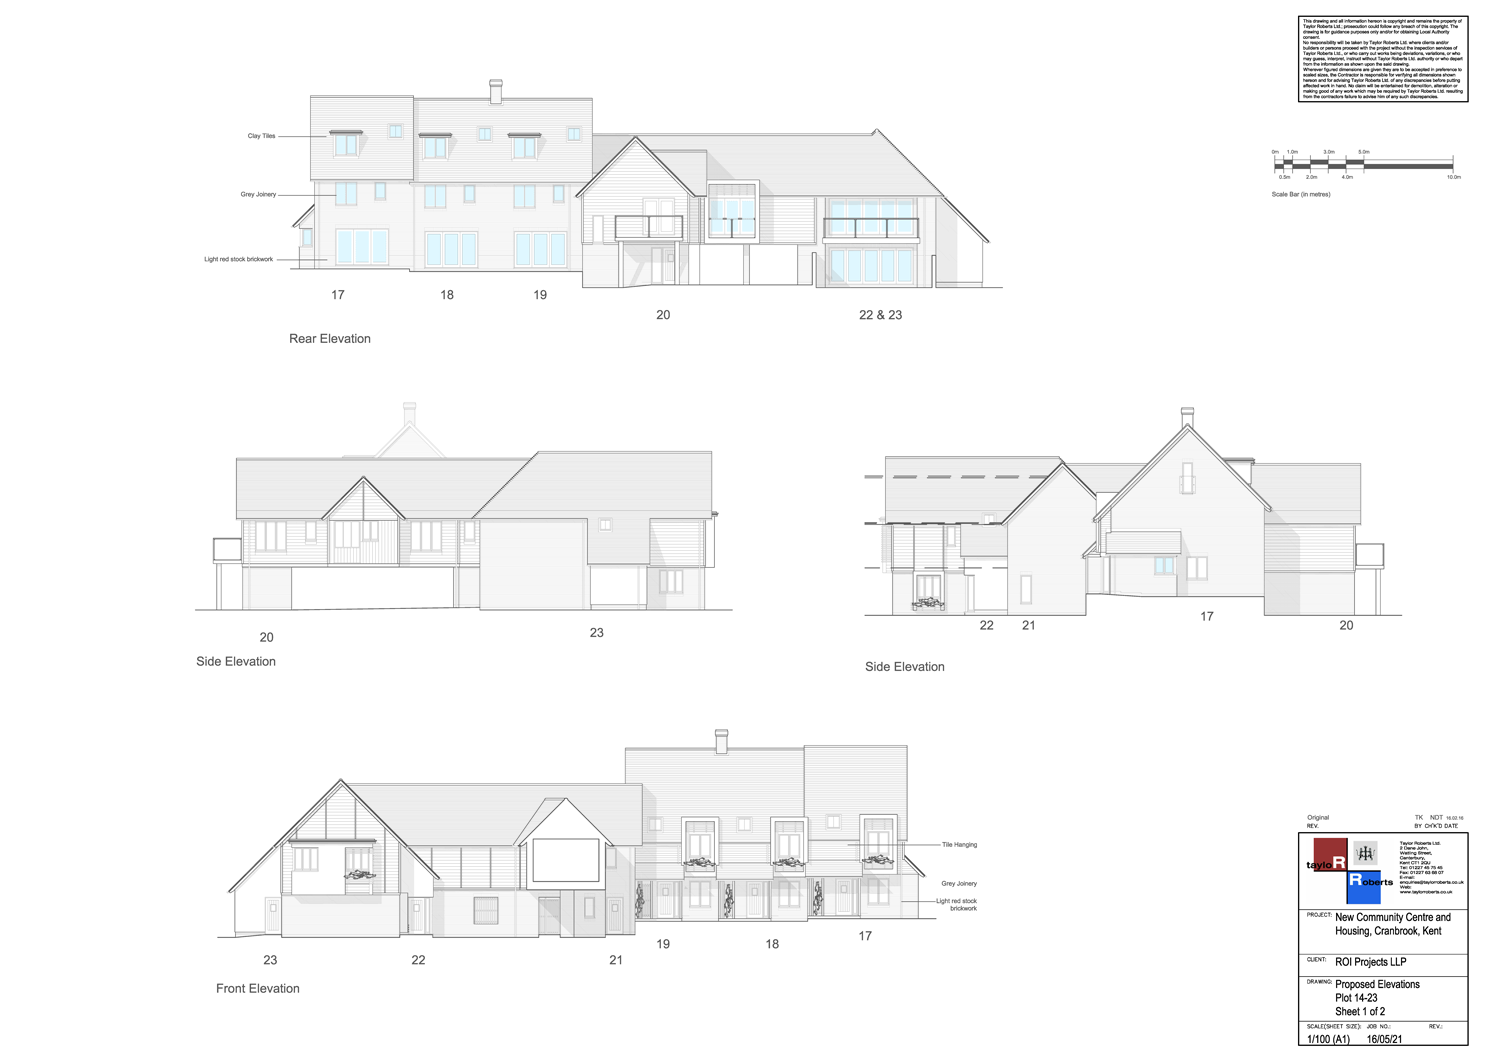 16-05-21---Proposed-Elevations-Plot-14-23--(Sheet-1-of-2).png